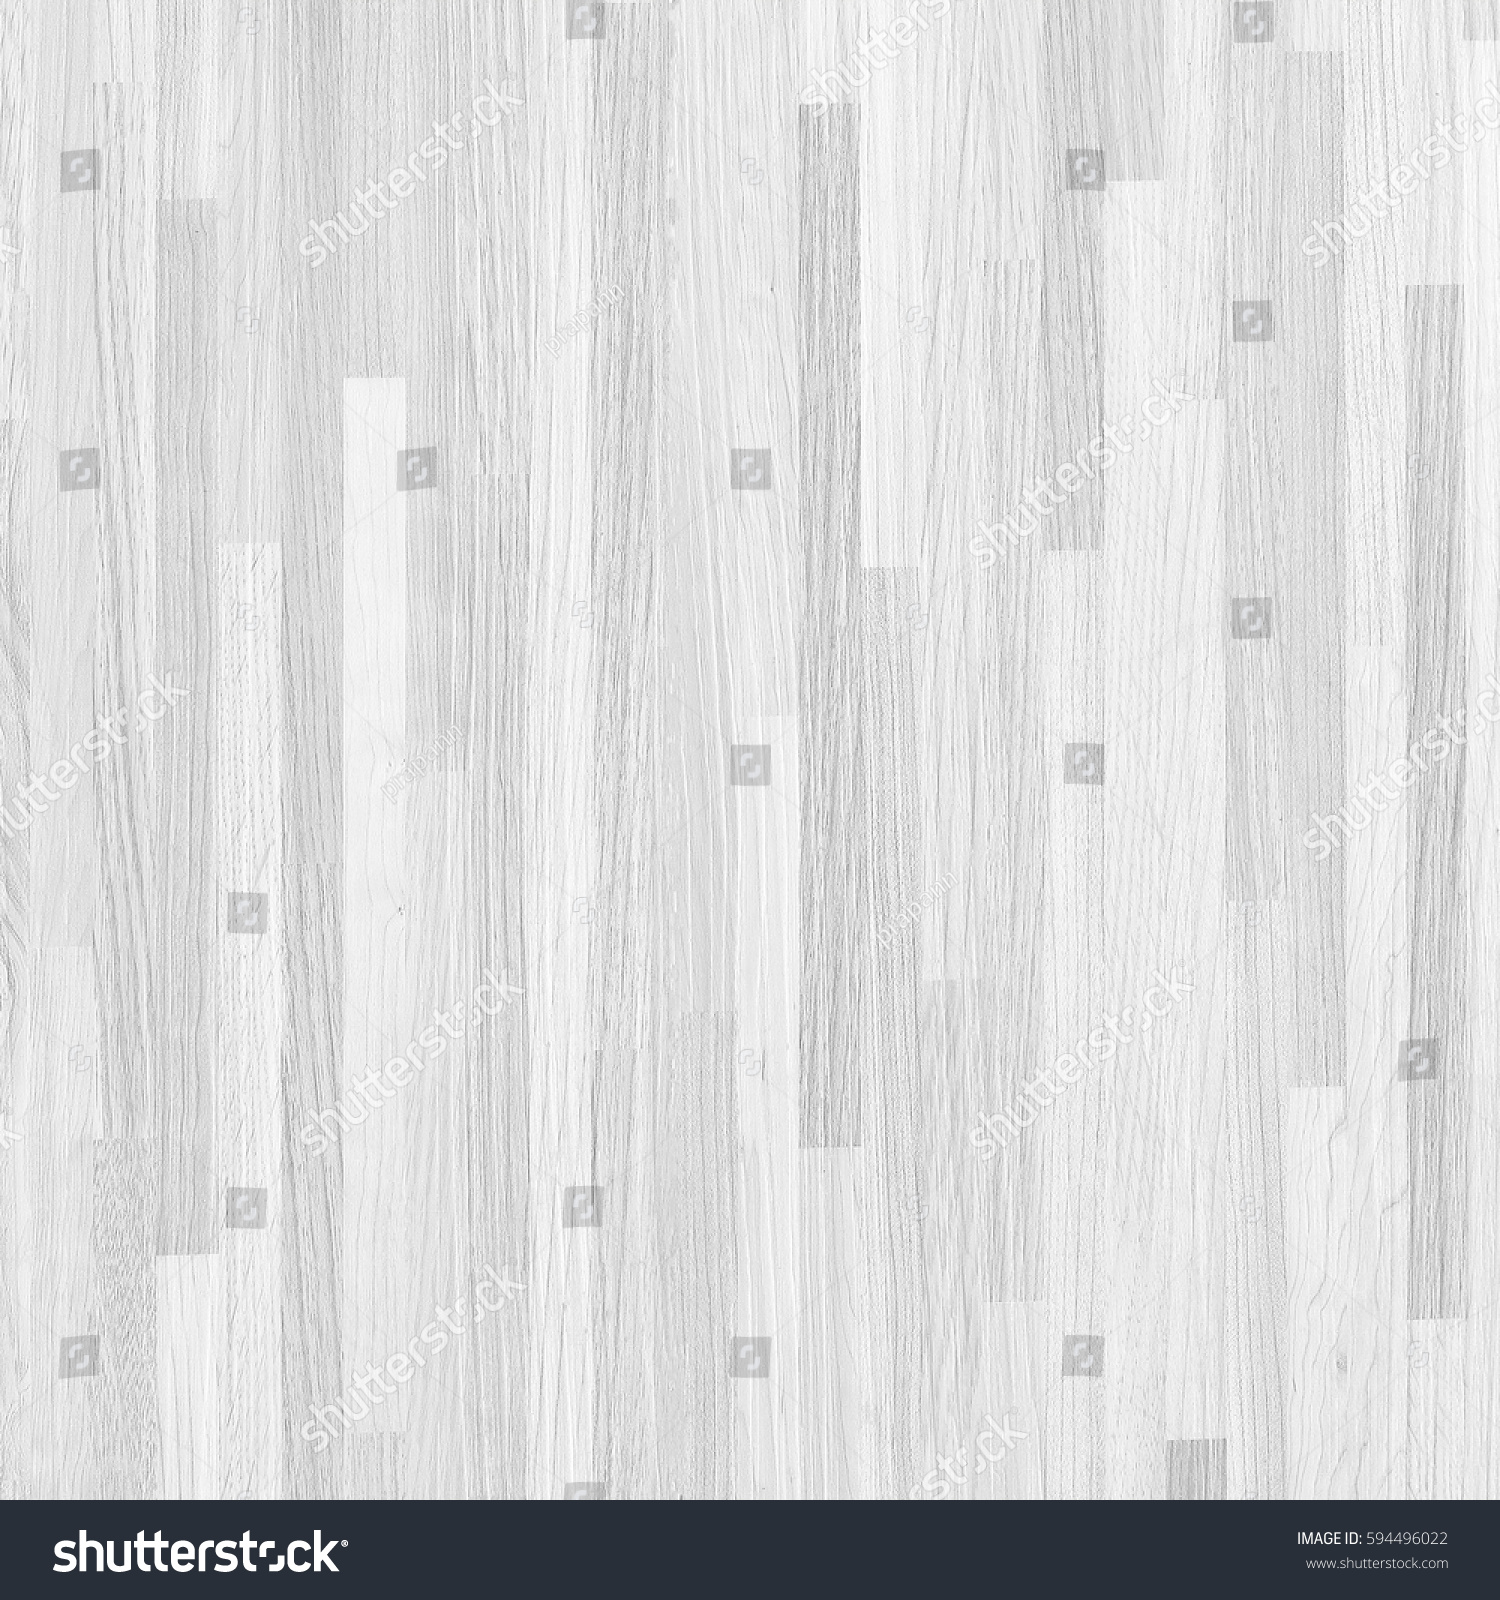 Seamless Gray Laminate Parquet Floor Texture 594496022